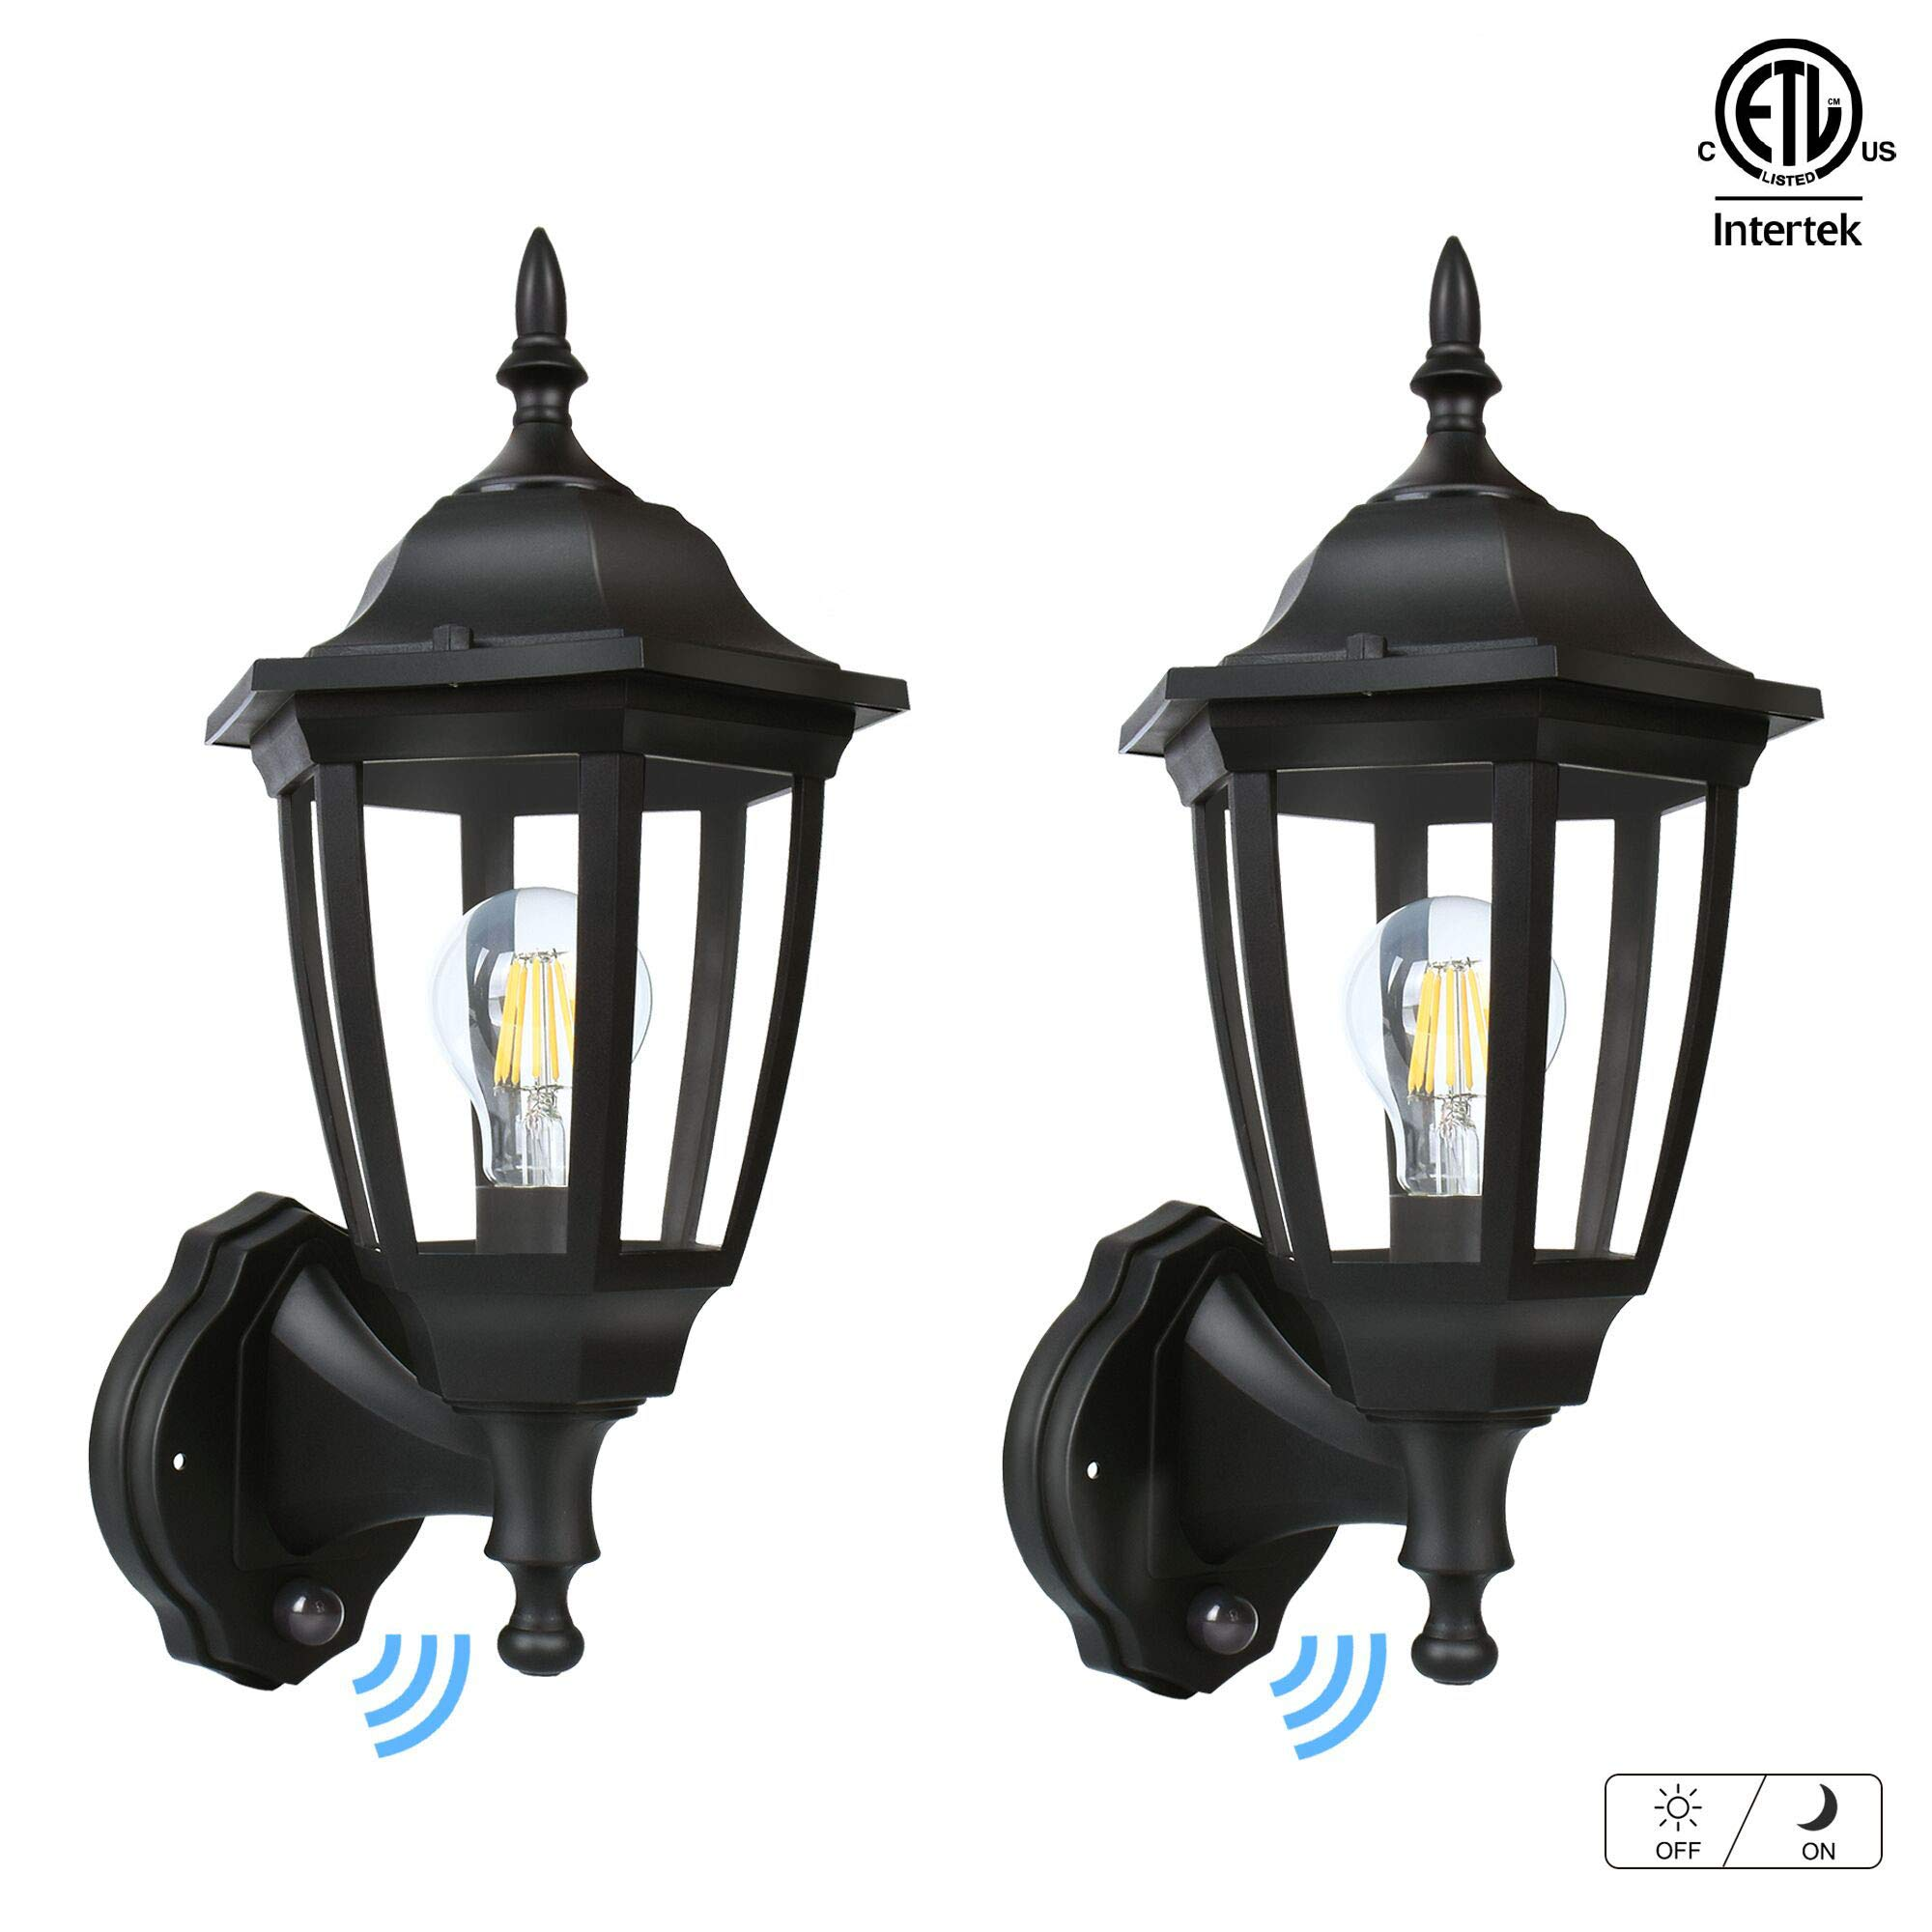 FUDESY Outdoor Dusk to Dawn LED Wall Lantern,Plastic Material Anti-Corrosion Black Porch Sensor Light with LED Edison Filament Bulb,Exterior Mount Lanterns for Porch, Garage(2-Pack),FDS2542EPSB by FUDESY